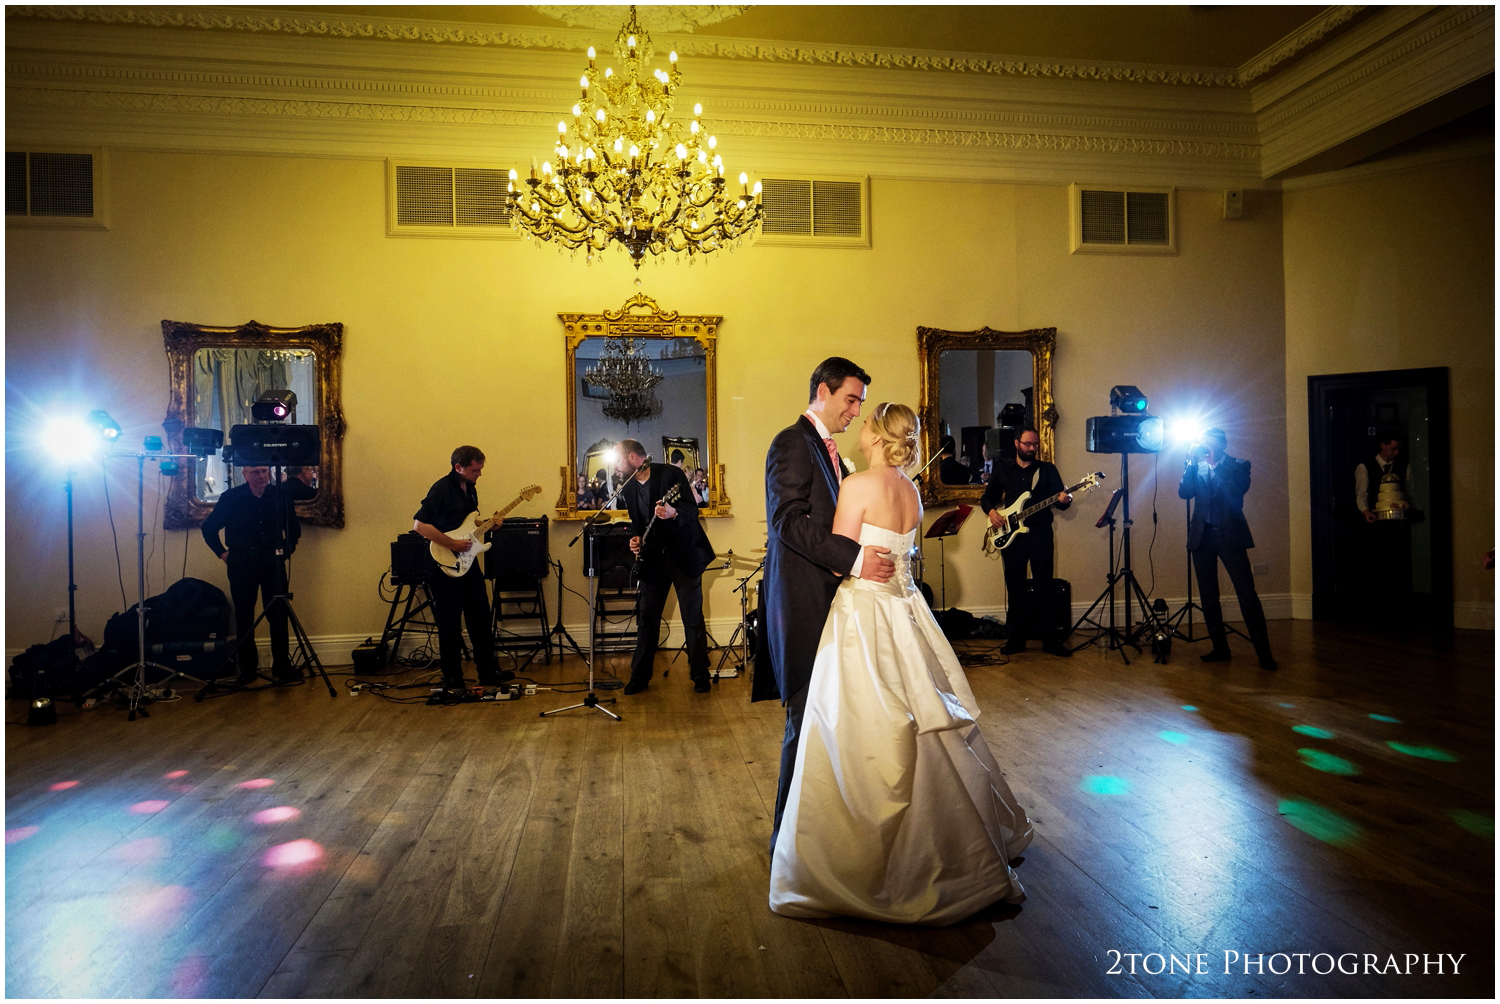 Kristen and Innes take to the dance floor for their first dance as man and wife.